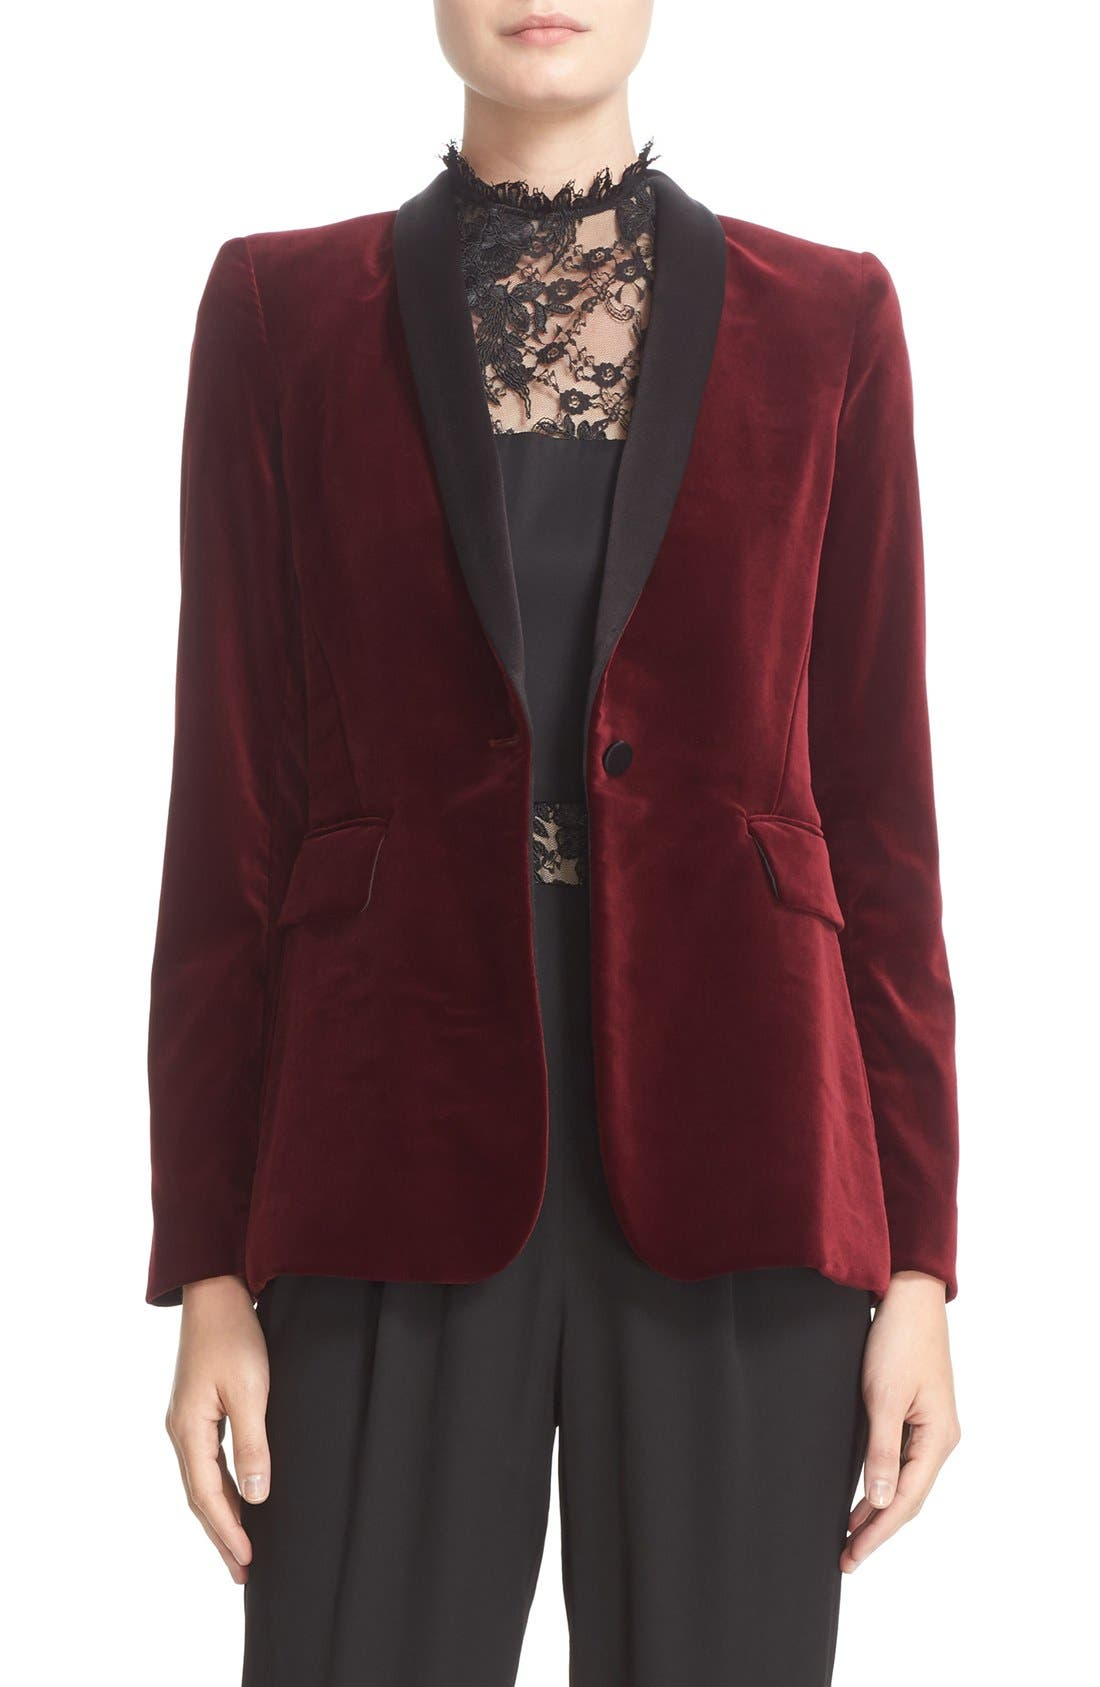 'Macey' Satin Lapel Velvet One-Button Blazer,                         Main,                         color, Bordeaux/ Black